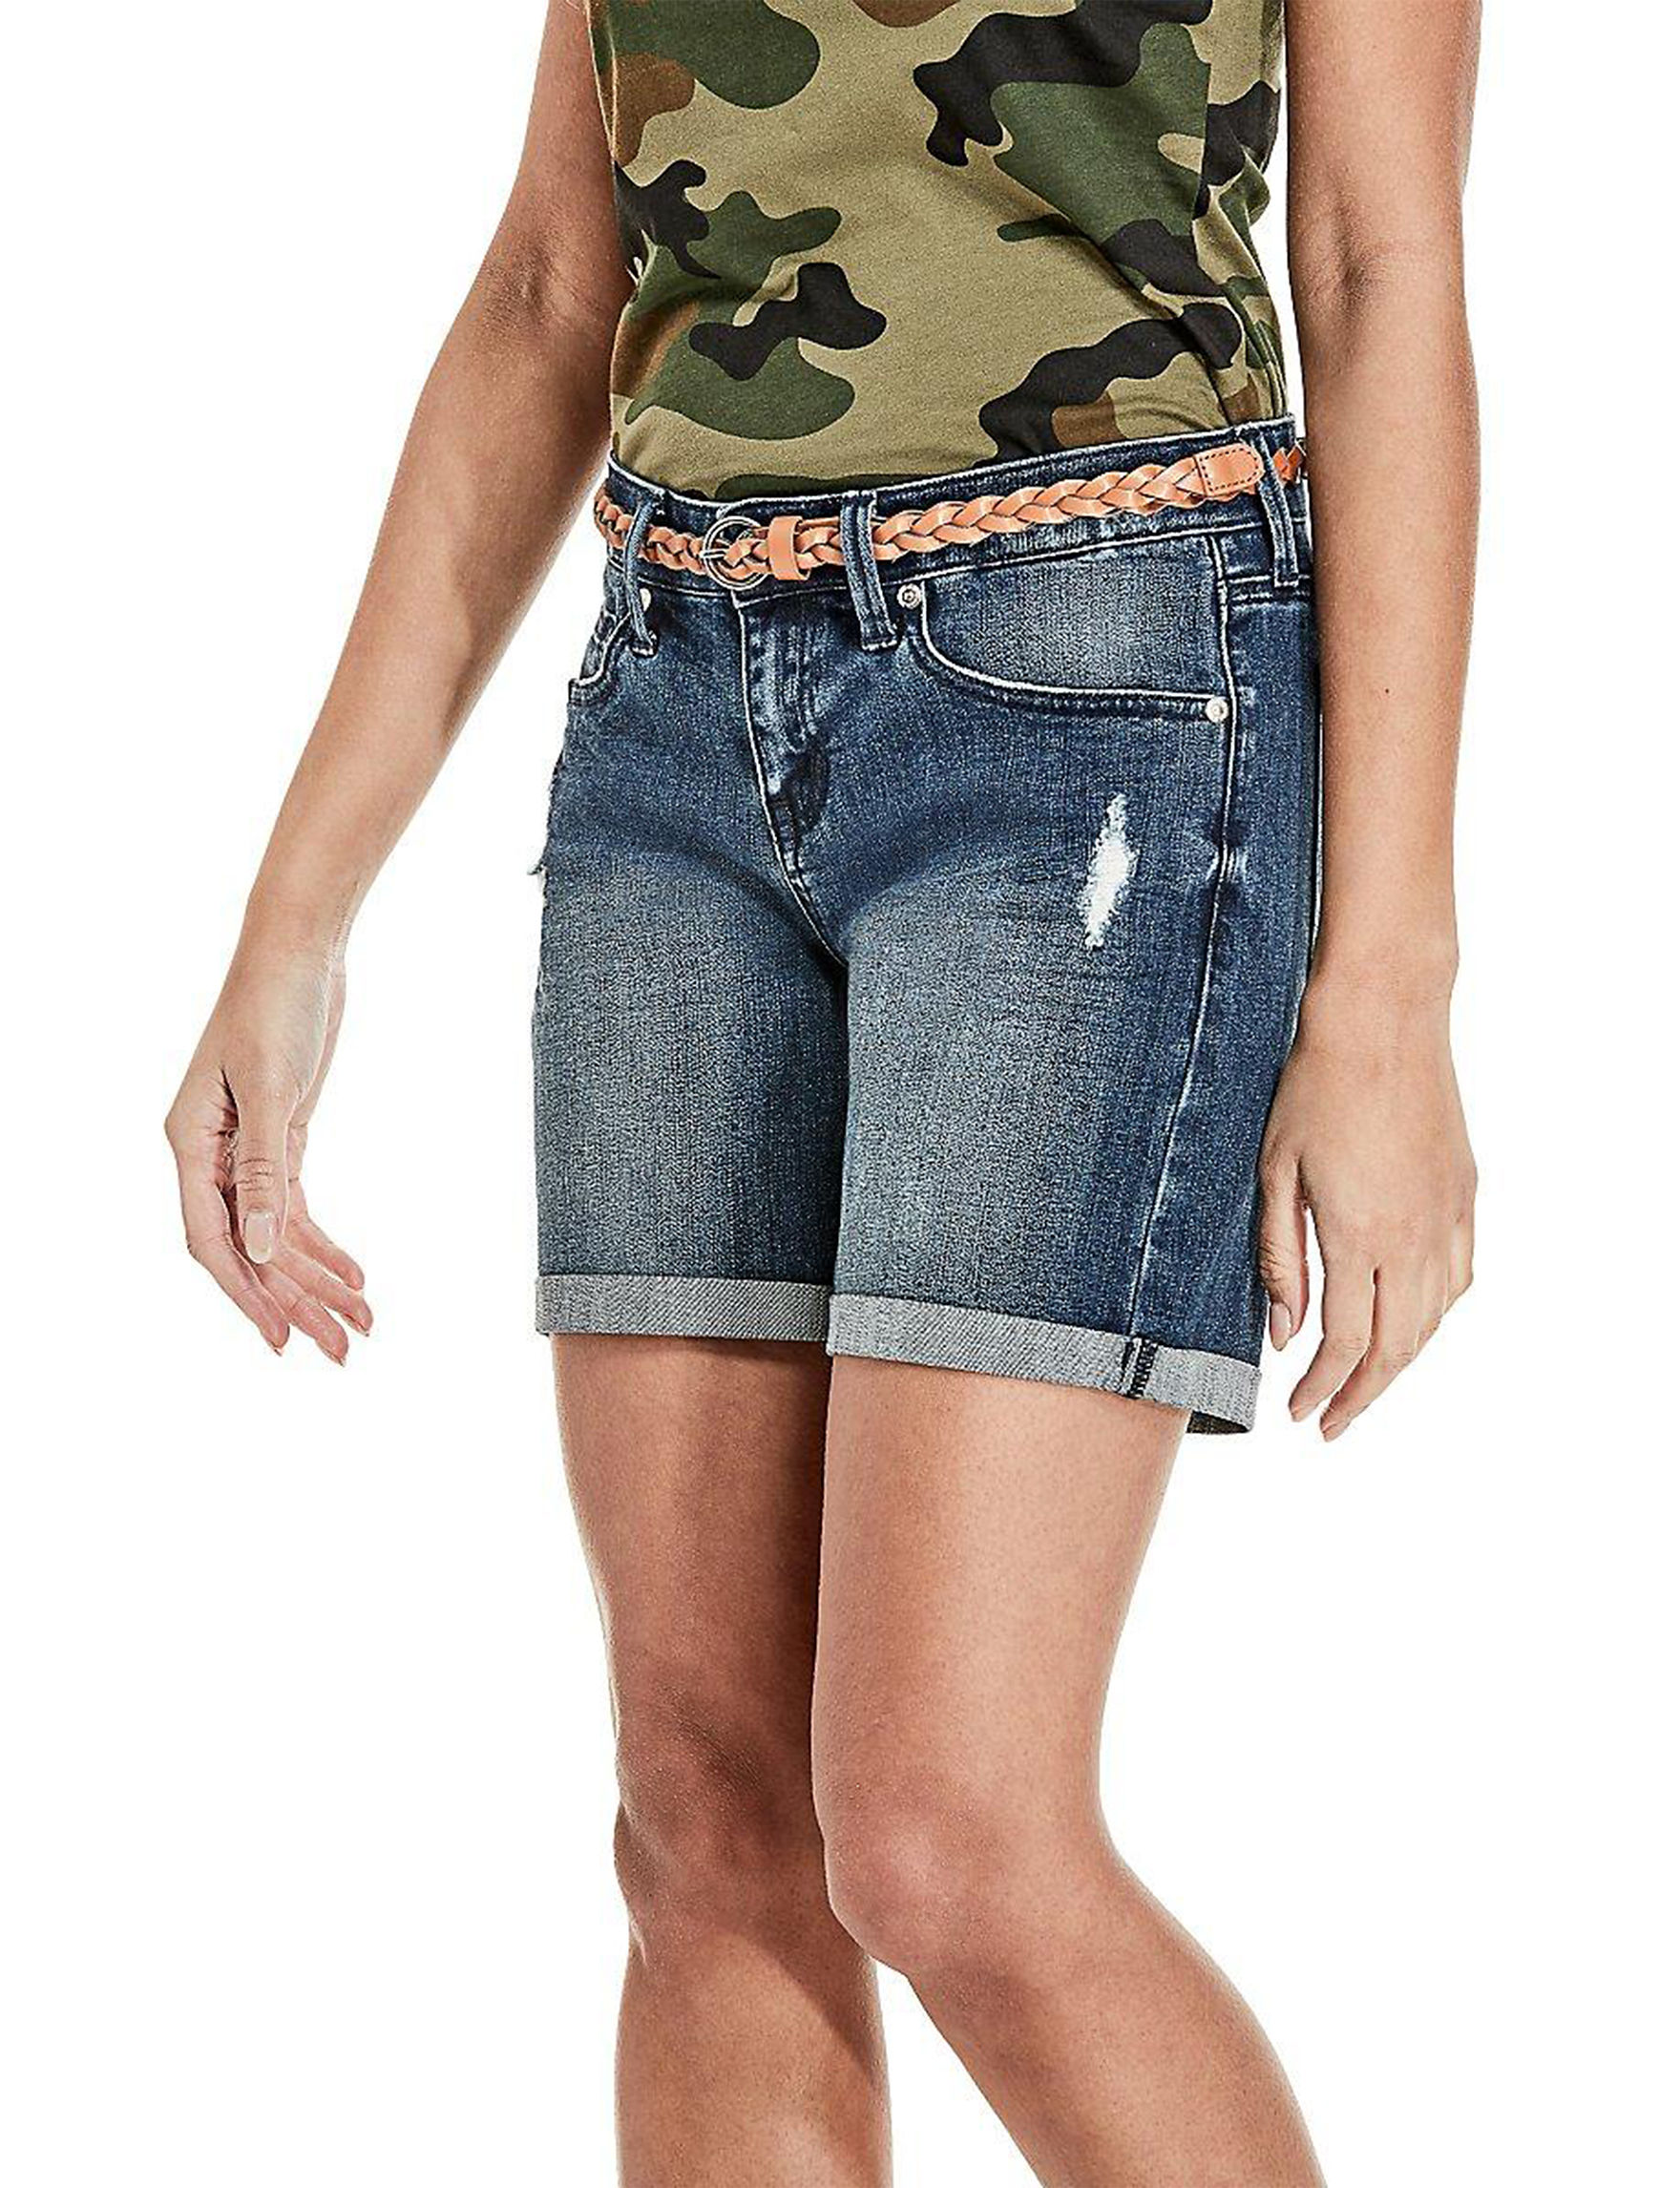 G by Guess Dark Wash Denim Shorts